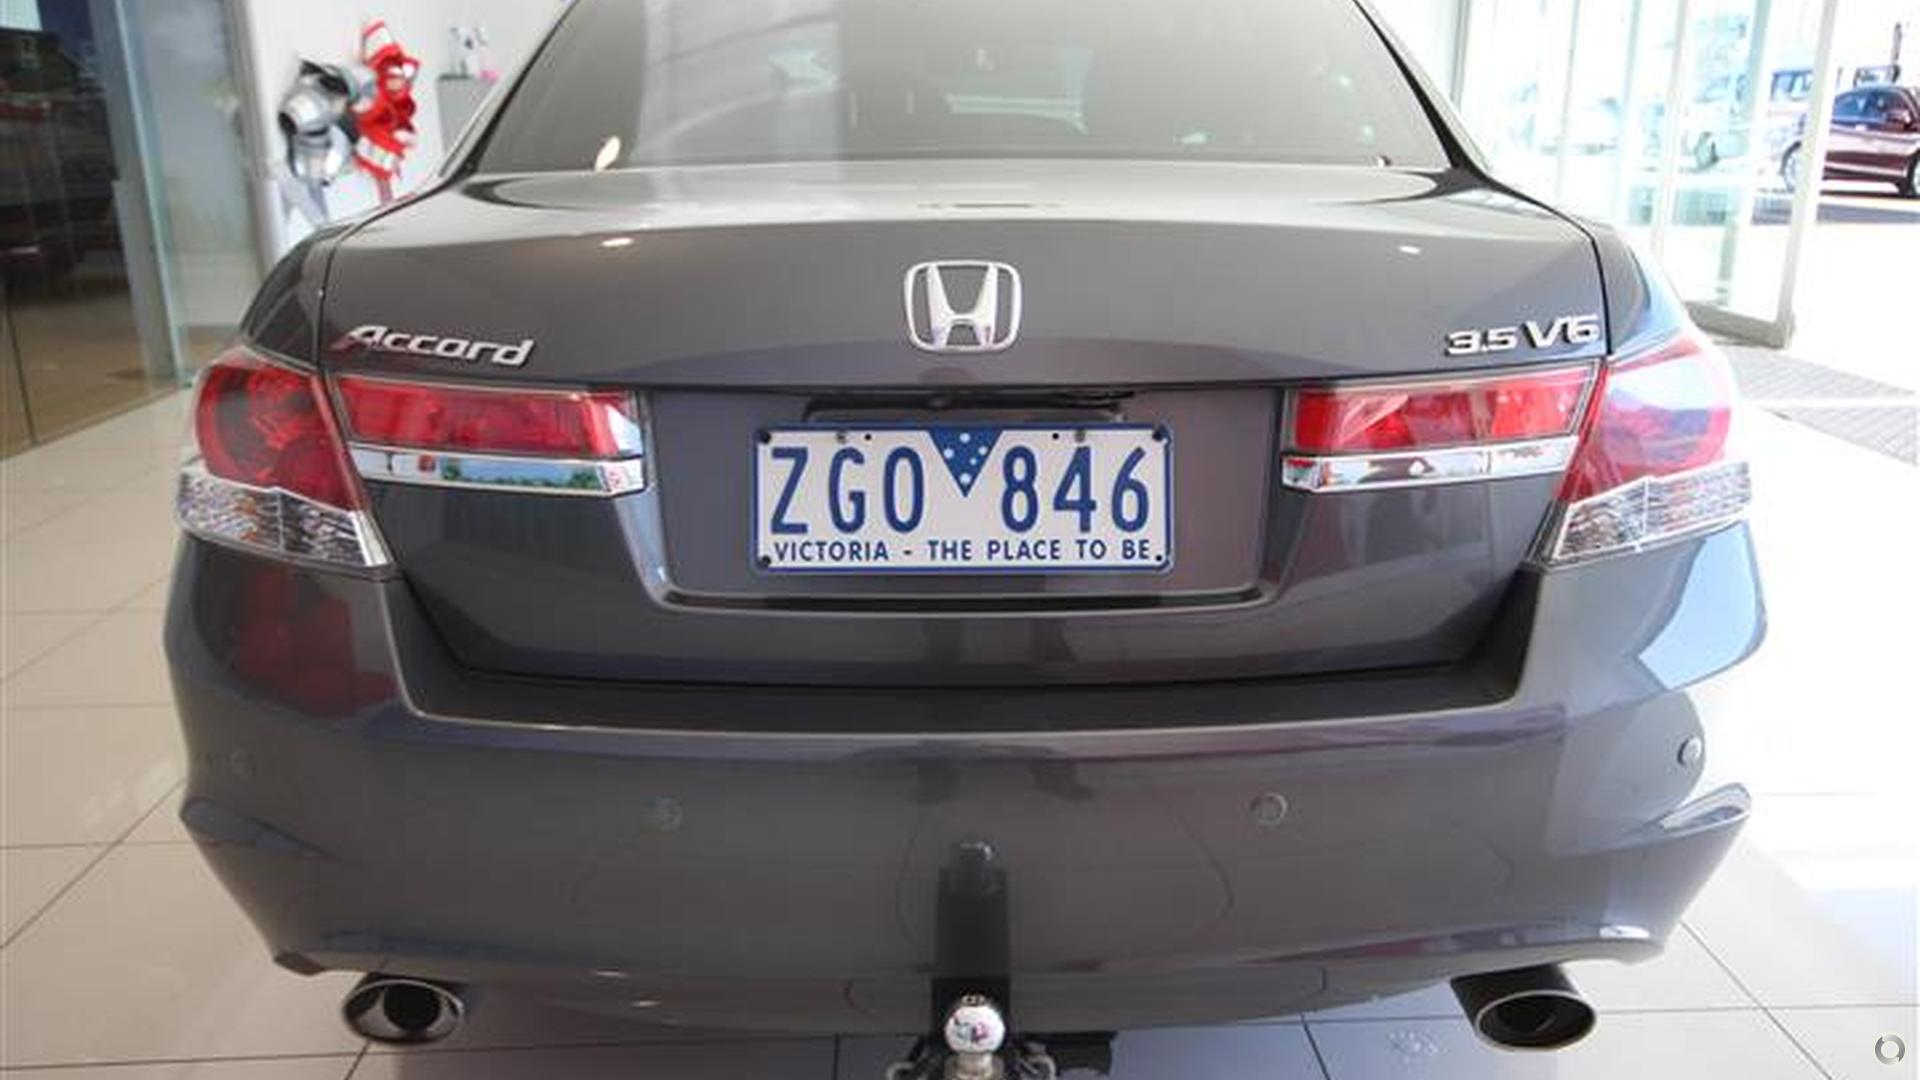 2012 Honda Accord V6 Luxury 8th Gen